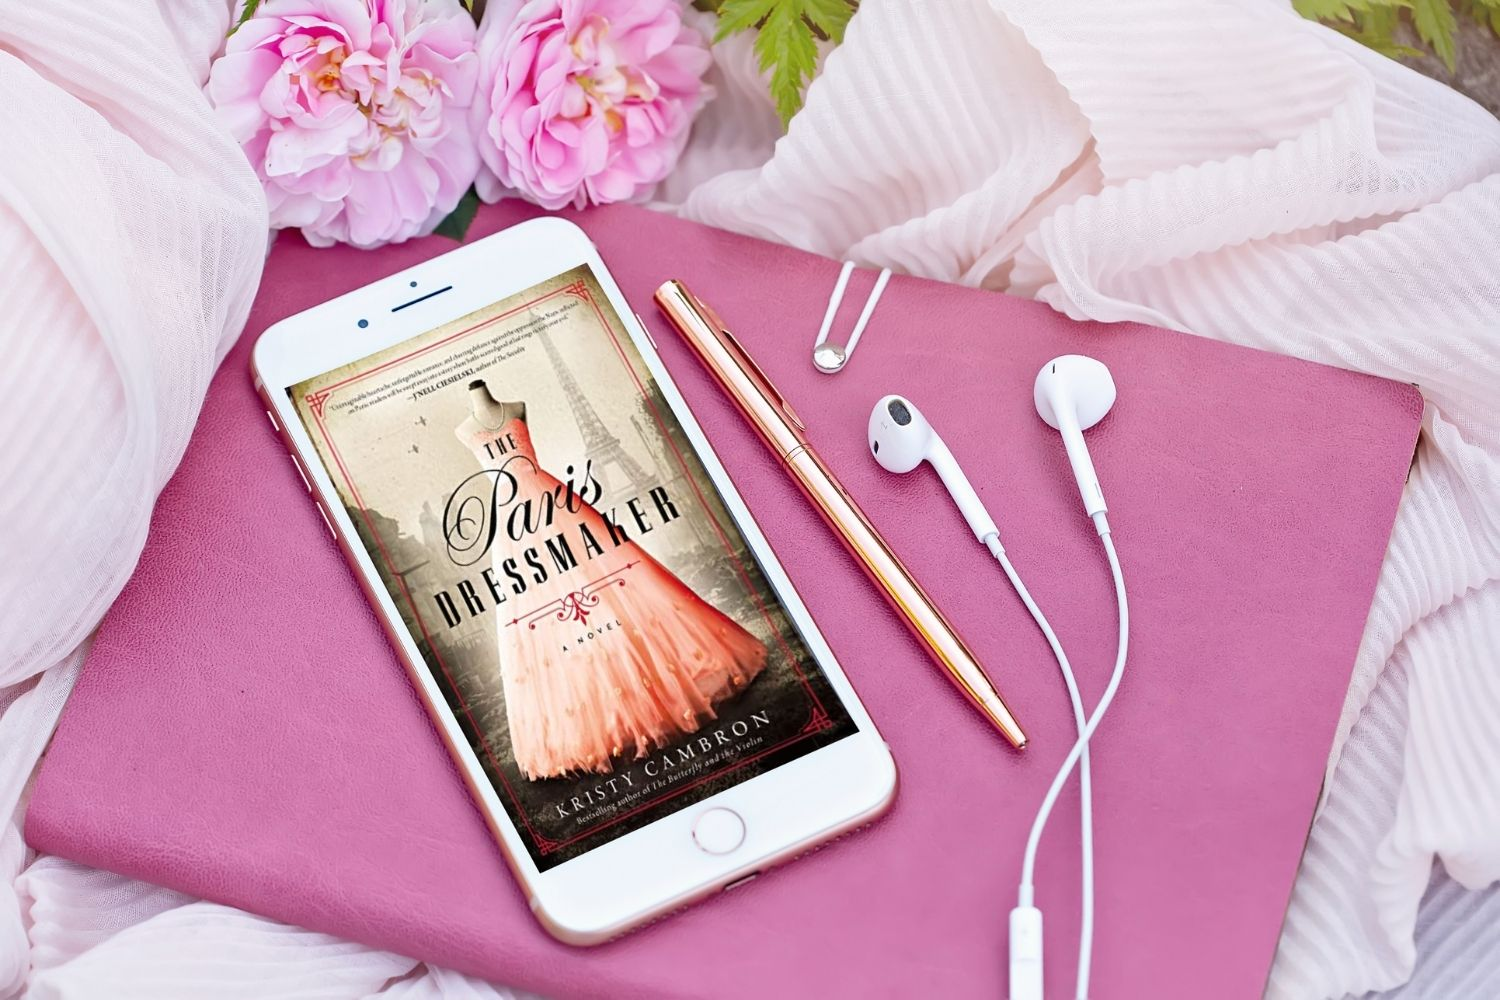 The Paris Dressmaker at Wickedly Romance